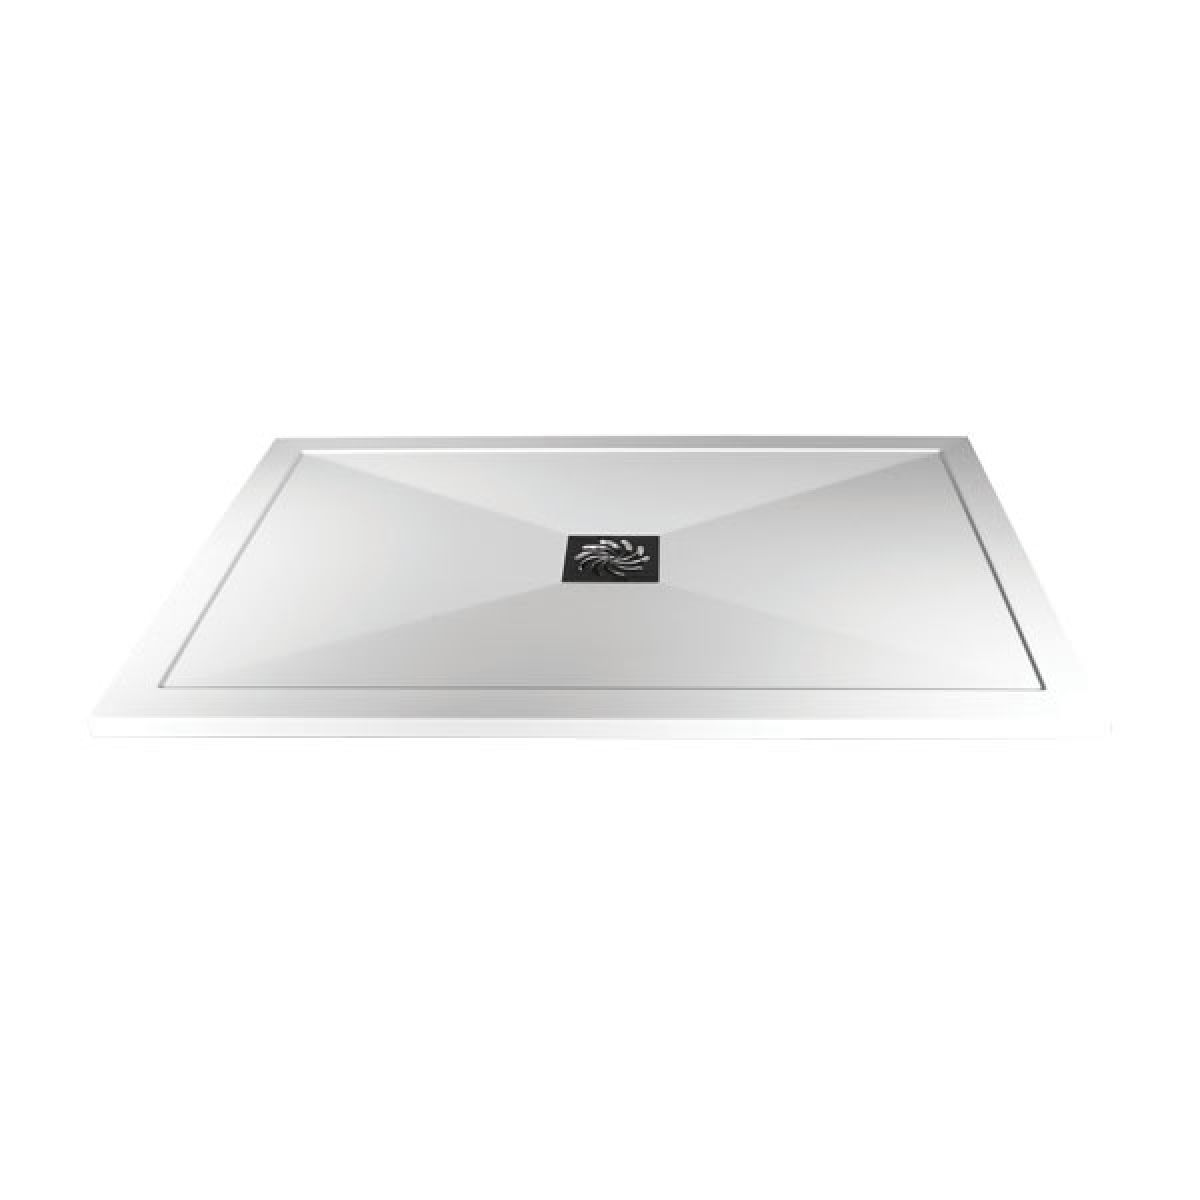 Frontline Slimline Rectangular Shower Tray 1500 x 800mm